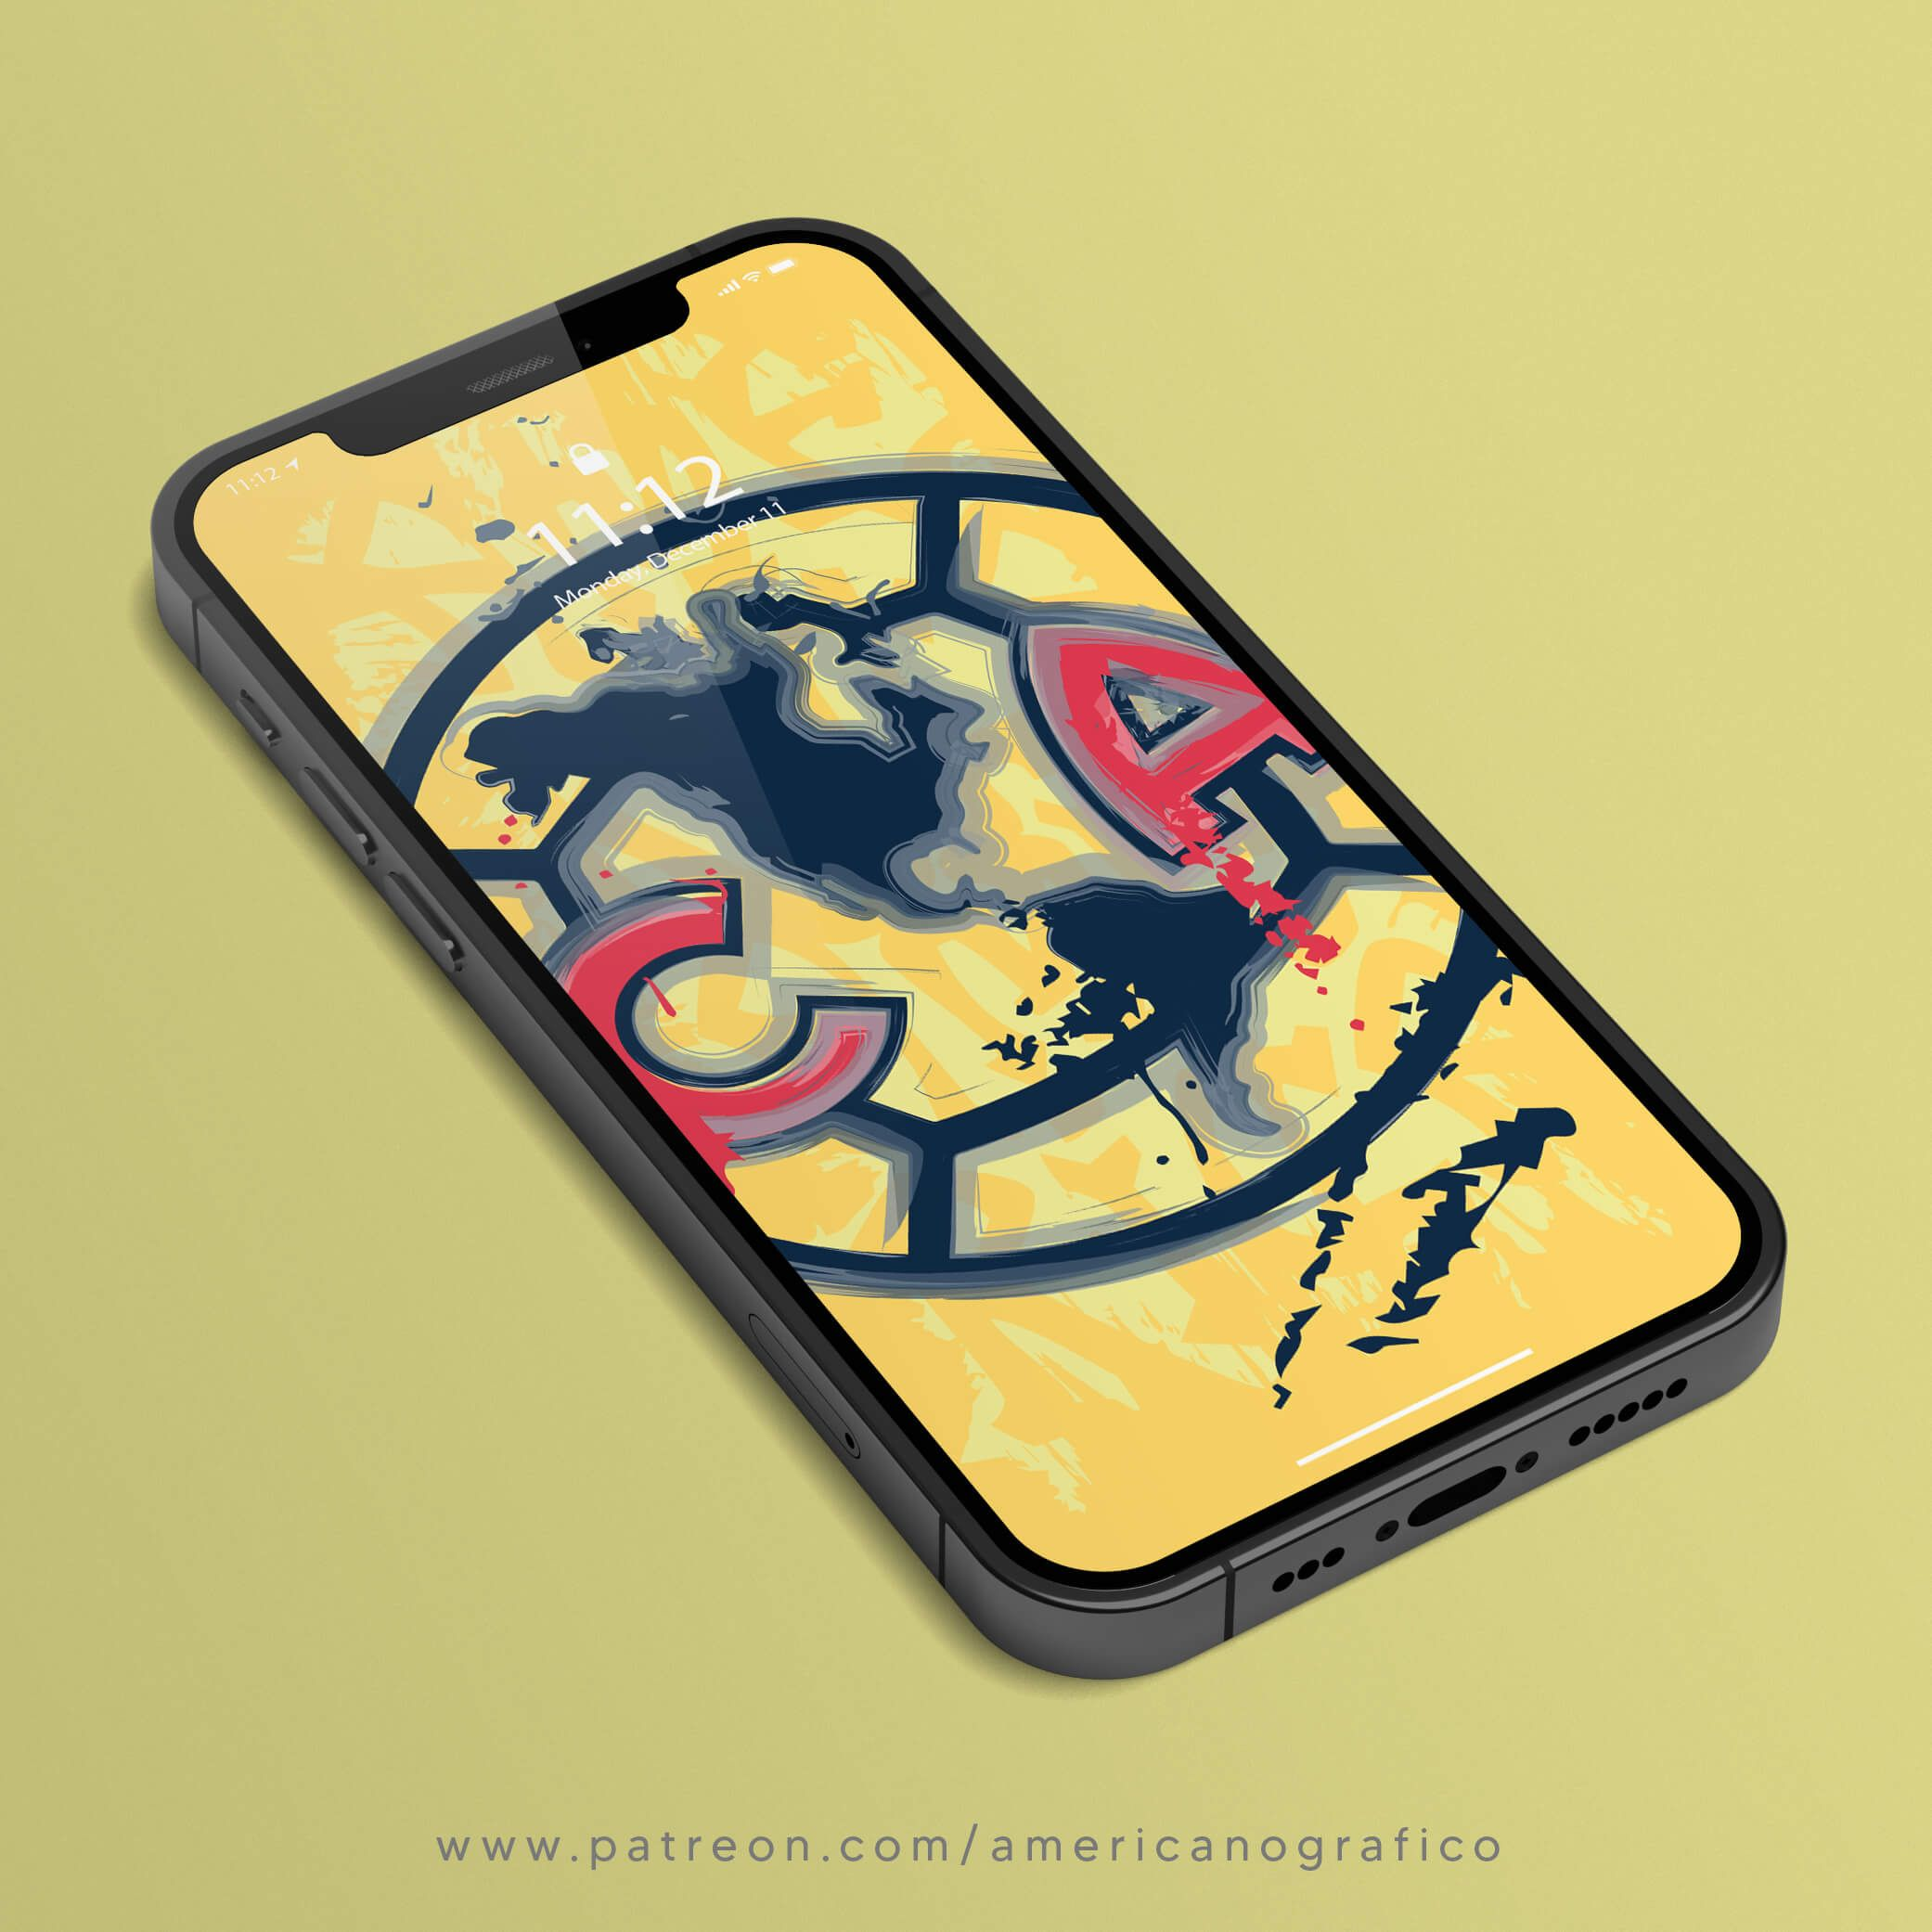 Americanografico Is Creating Arte Azulcrema Patreon In 2021 Phone Cases Electronic Products Case